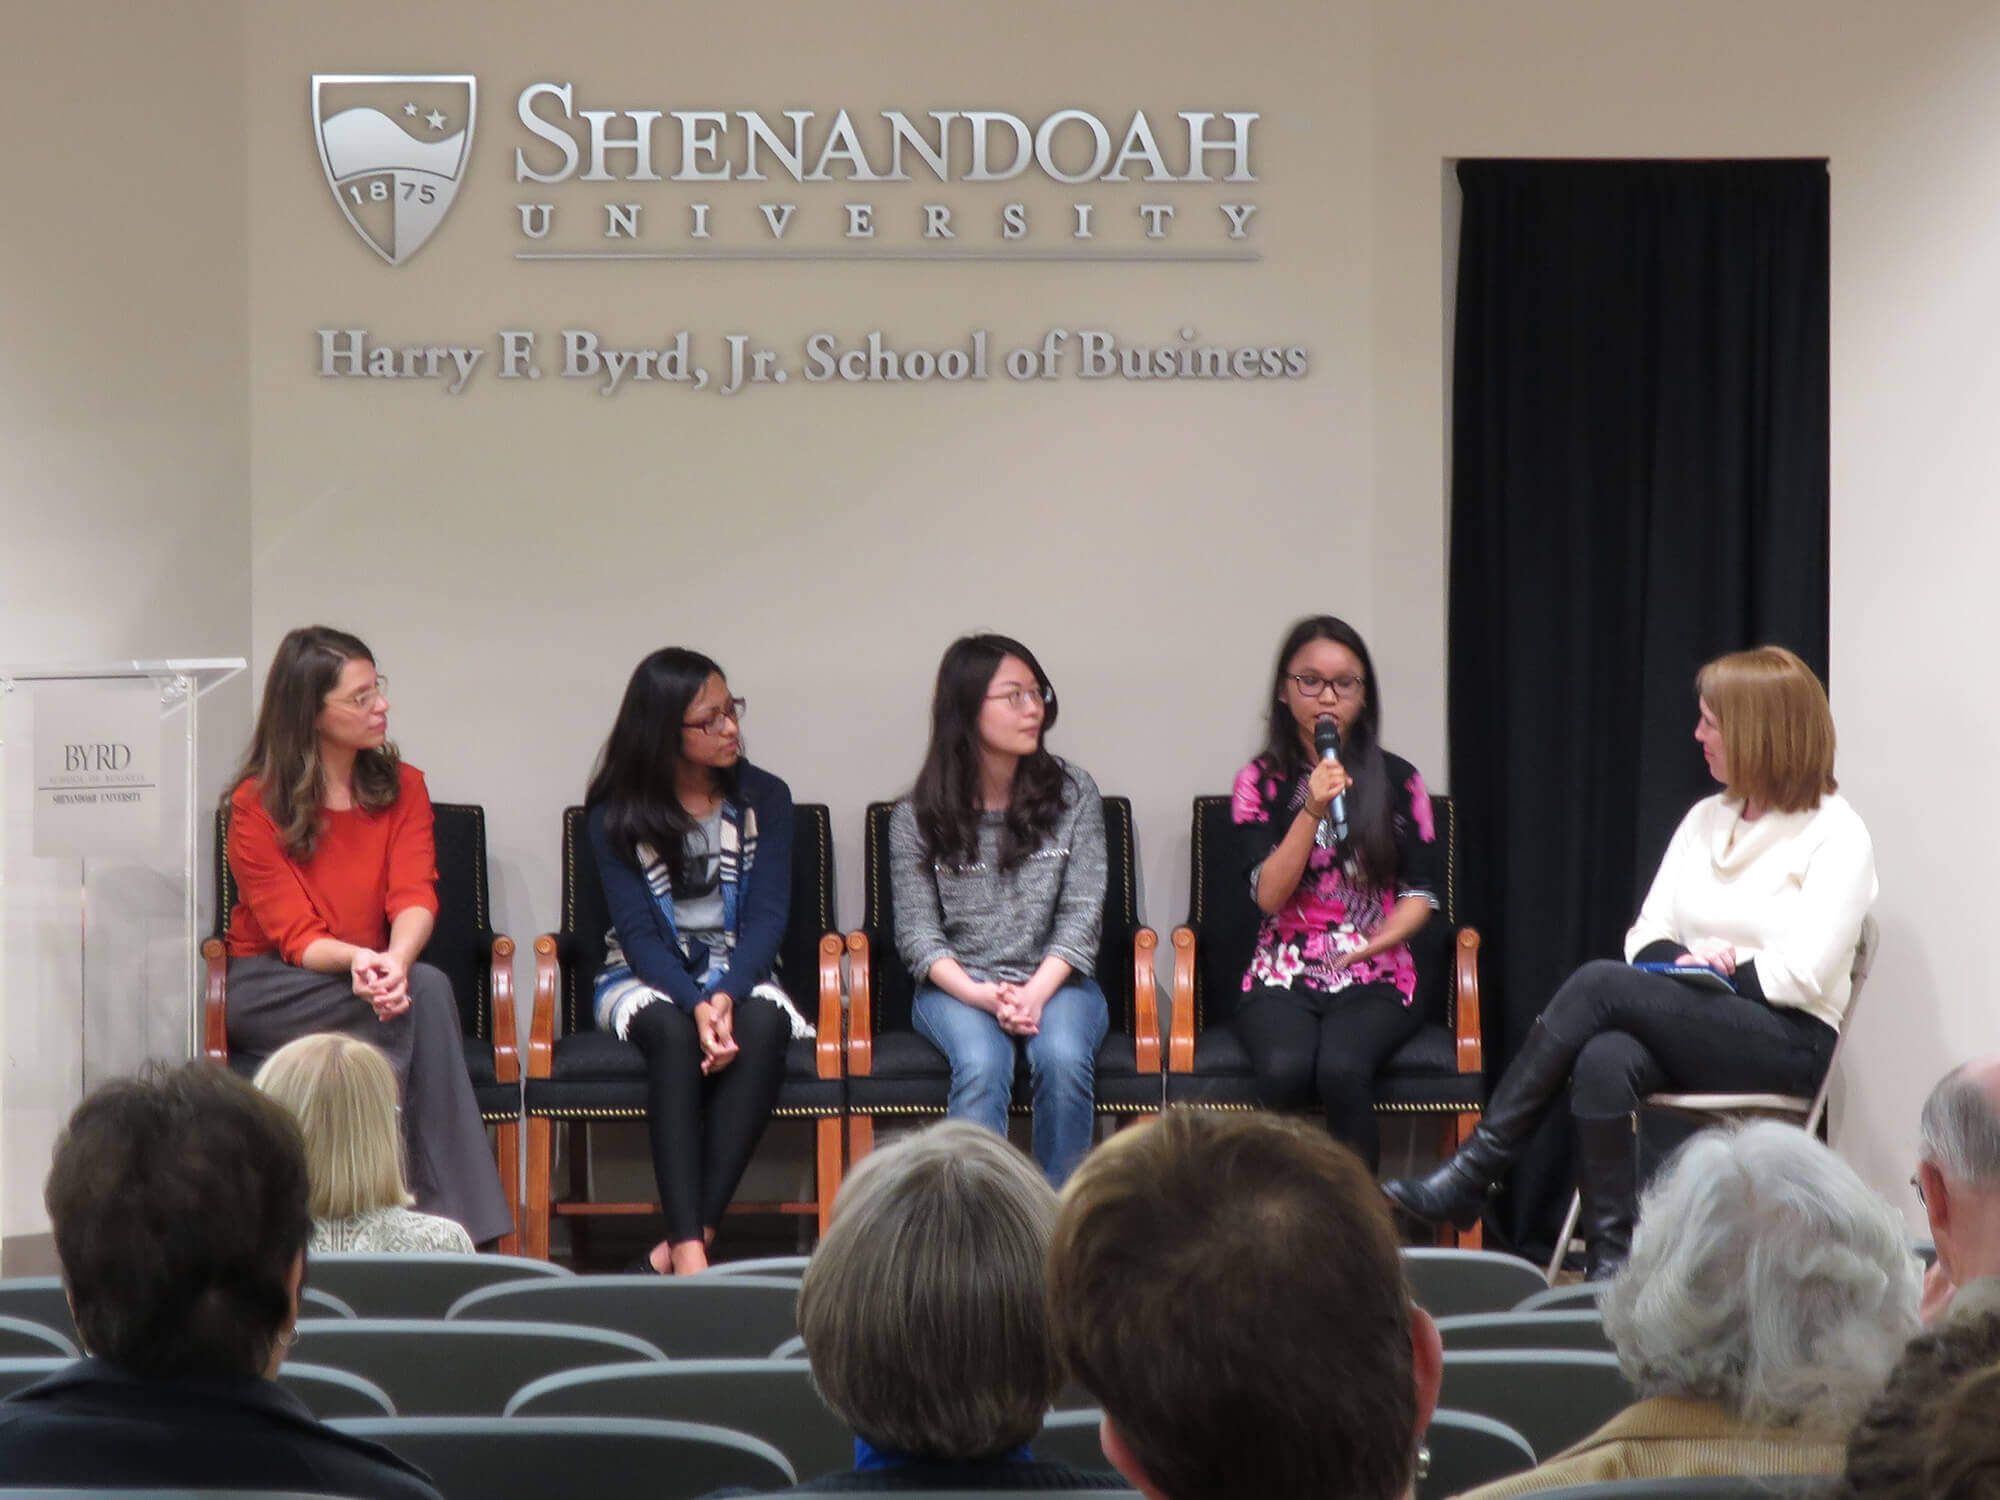 Shenandoah University Celebrates Women's History Month with Special Film Series